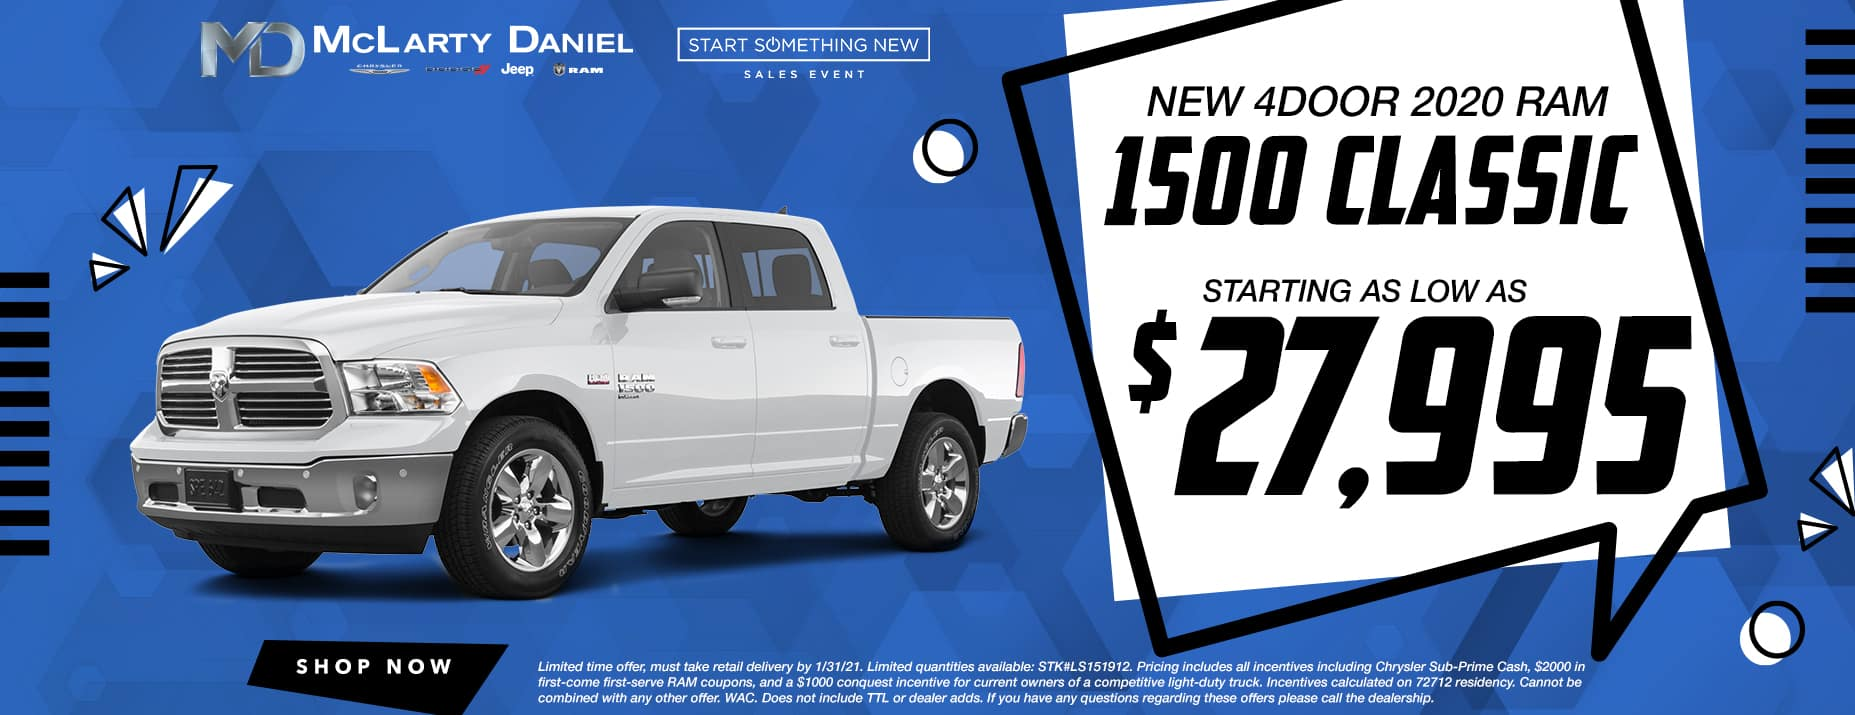 NEW FOUR DOOR 2020 RAM CLASSIC STARTING AS LOW A $27,995!